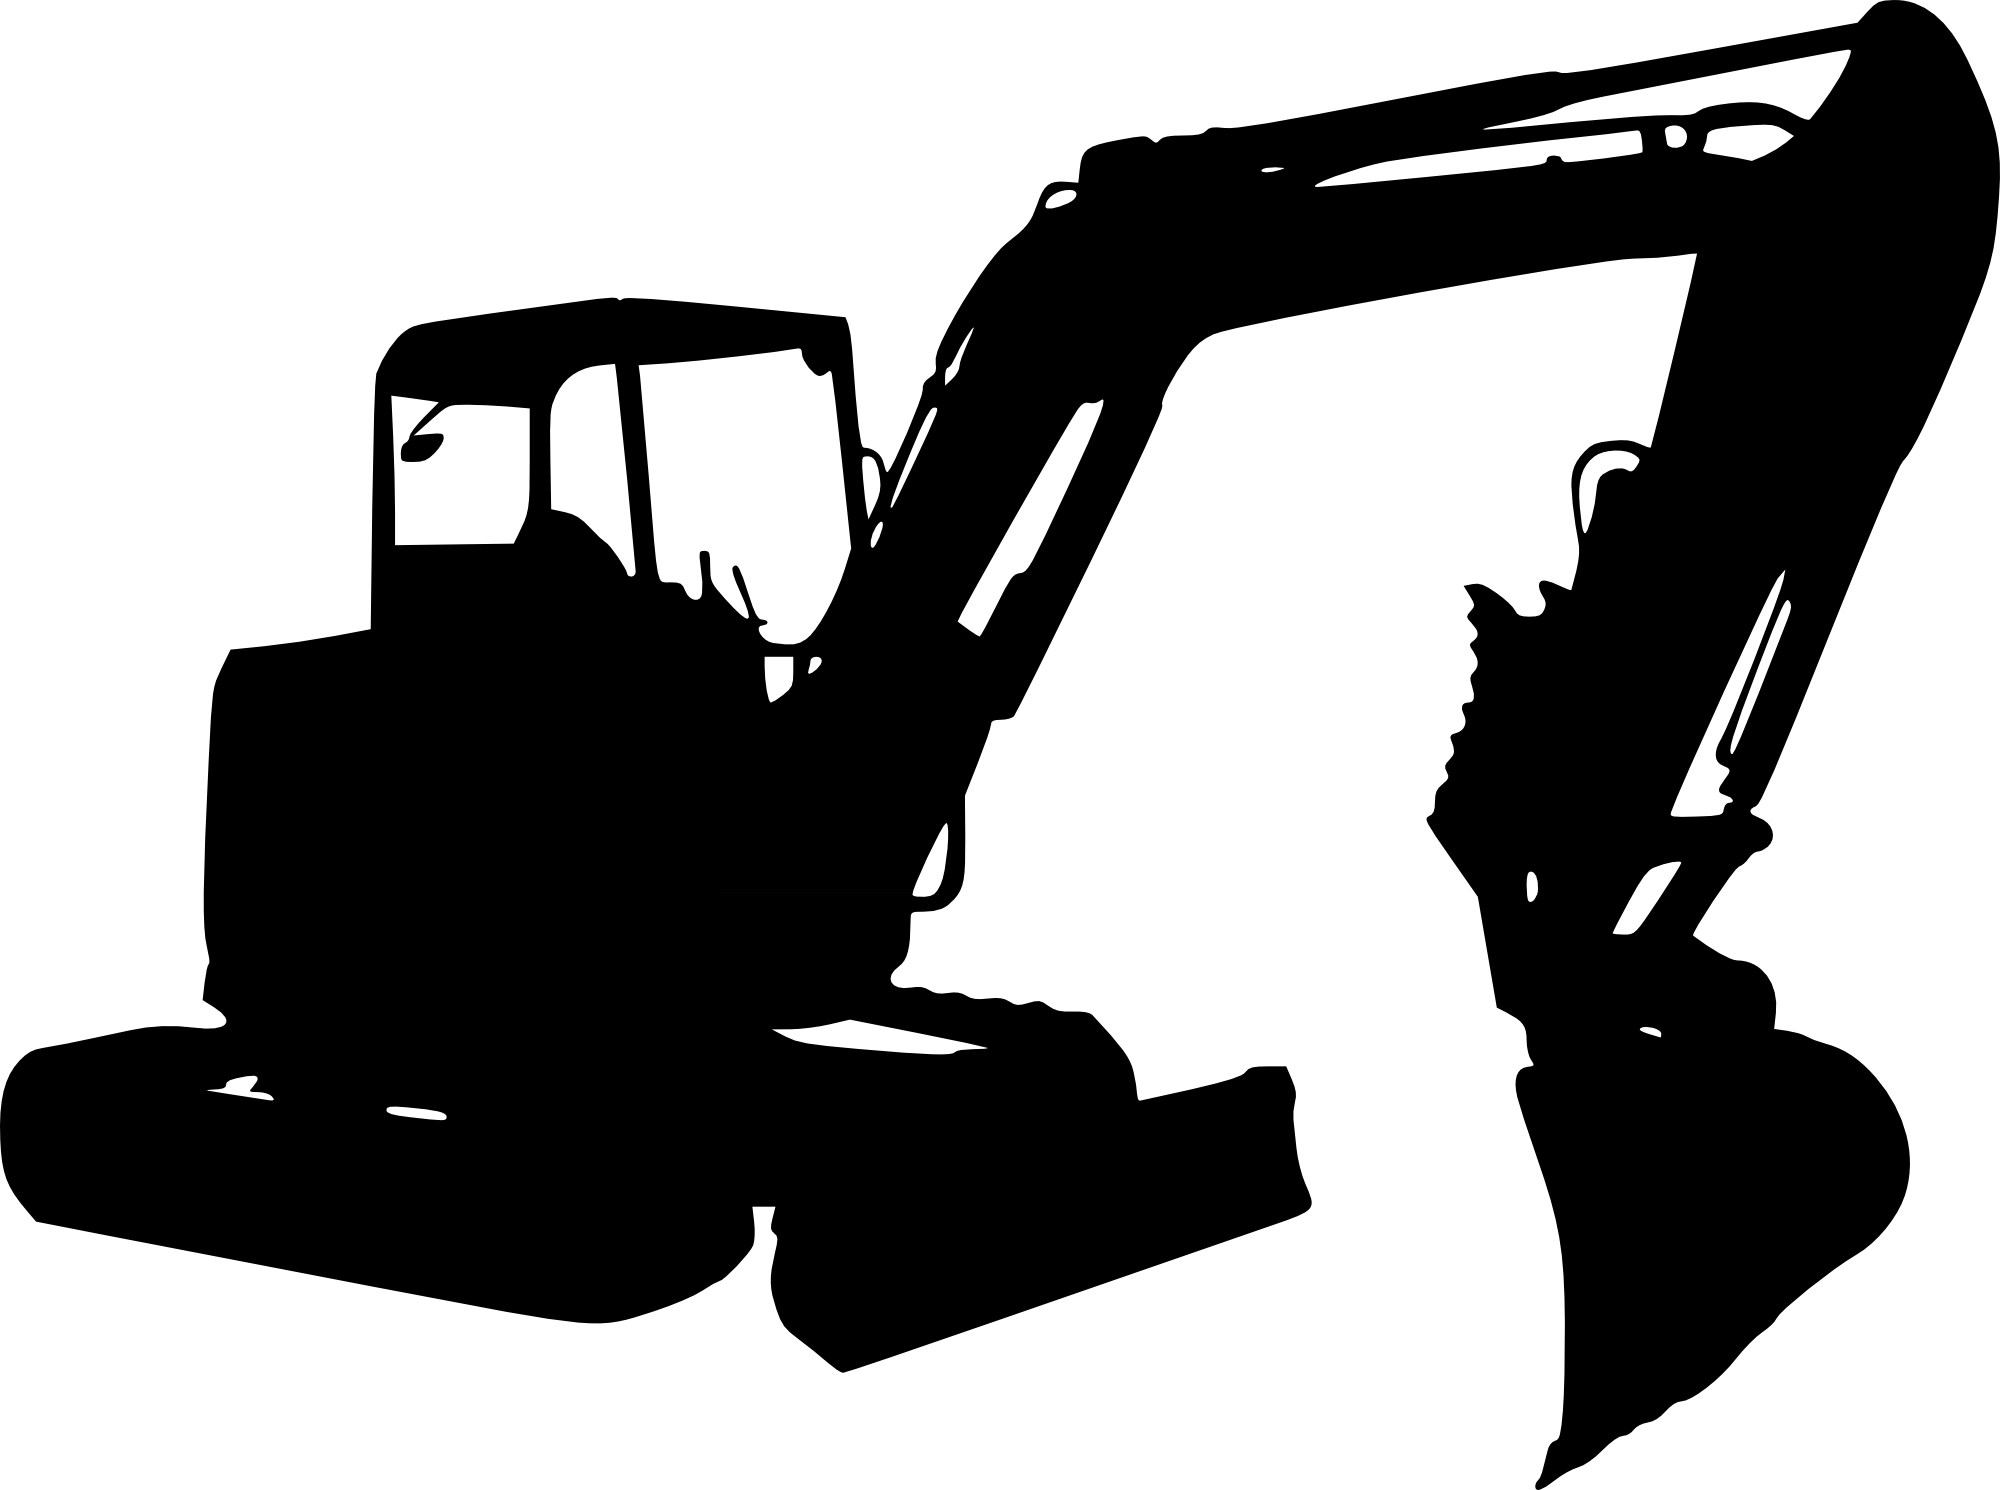 5 excavator silhouette  png transparent  onlygfx com bride bridegroom clipart groom and bride clipart